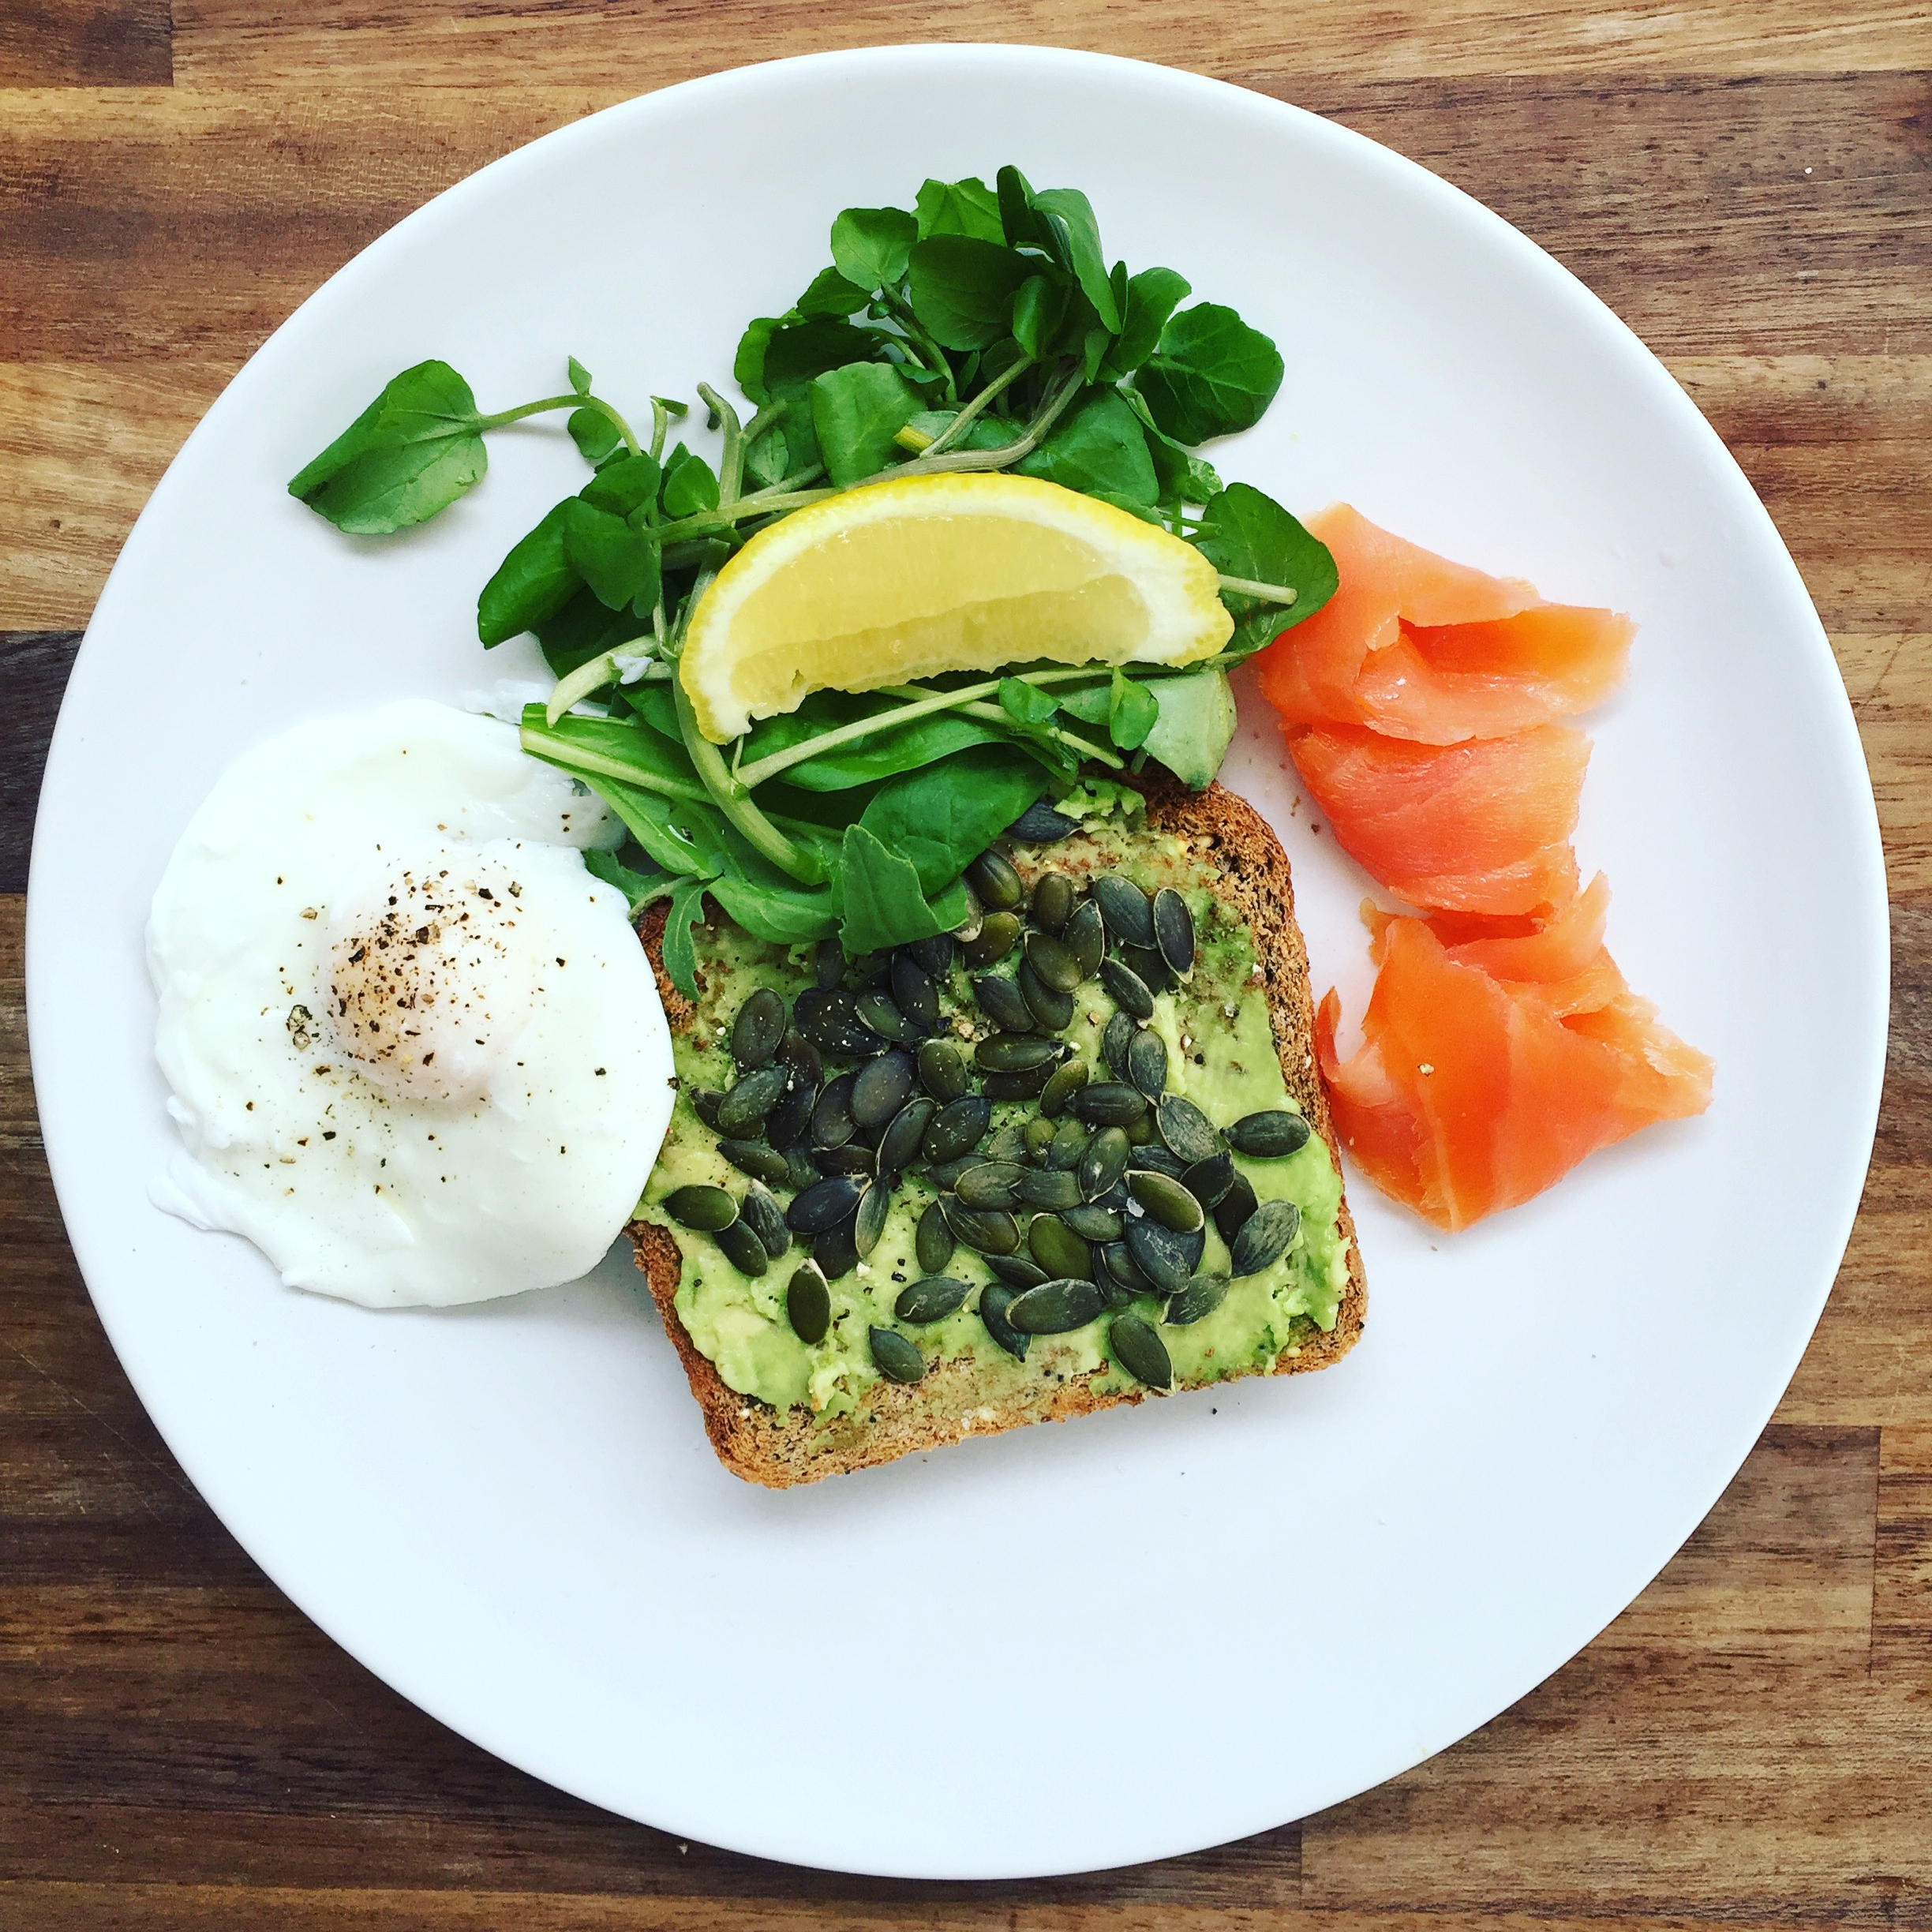 There's no reason not to add some greens to breakfast, and knocking Kale off the top spot for superfood of the moment is watercress. Yep it's peppery and intense, but what better way to wake yourself up in the morning...Here I've got some homemade bread my dad baked (Waitrose packet), with mashed avocado and pumpkin seeds, accompanied by protein rich poached egg and for a bit of a treat, smoked salmon. No reason to snack when you've had this healthy load.  For GF : Exchange the bread for Gluten free  For Vegans : Increase the greens,add a dollop of houmous and a side of beetroot